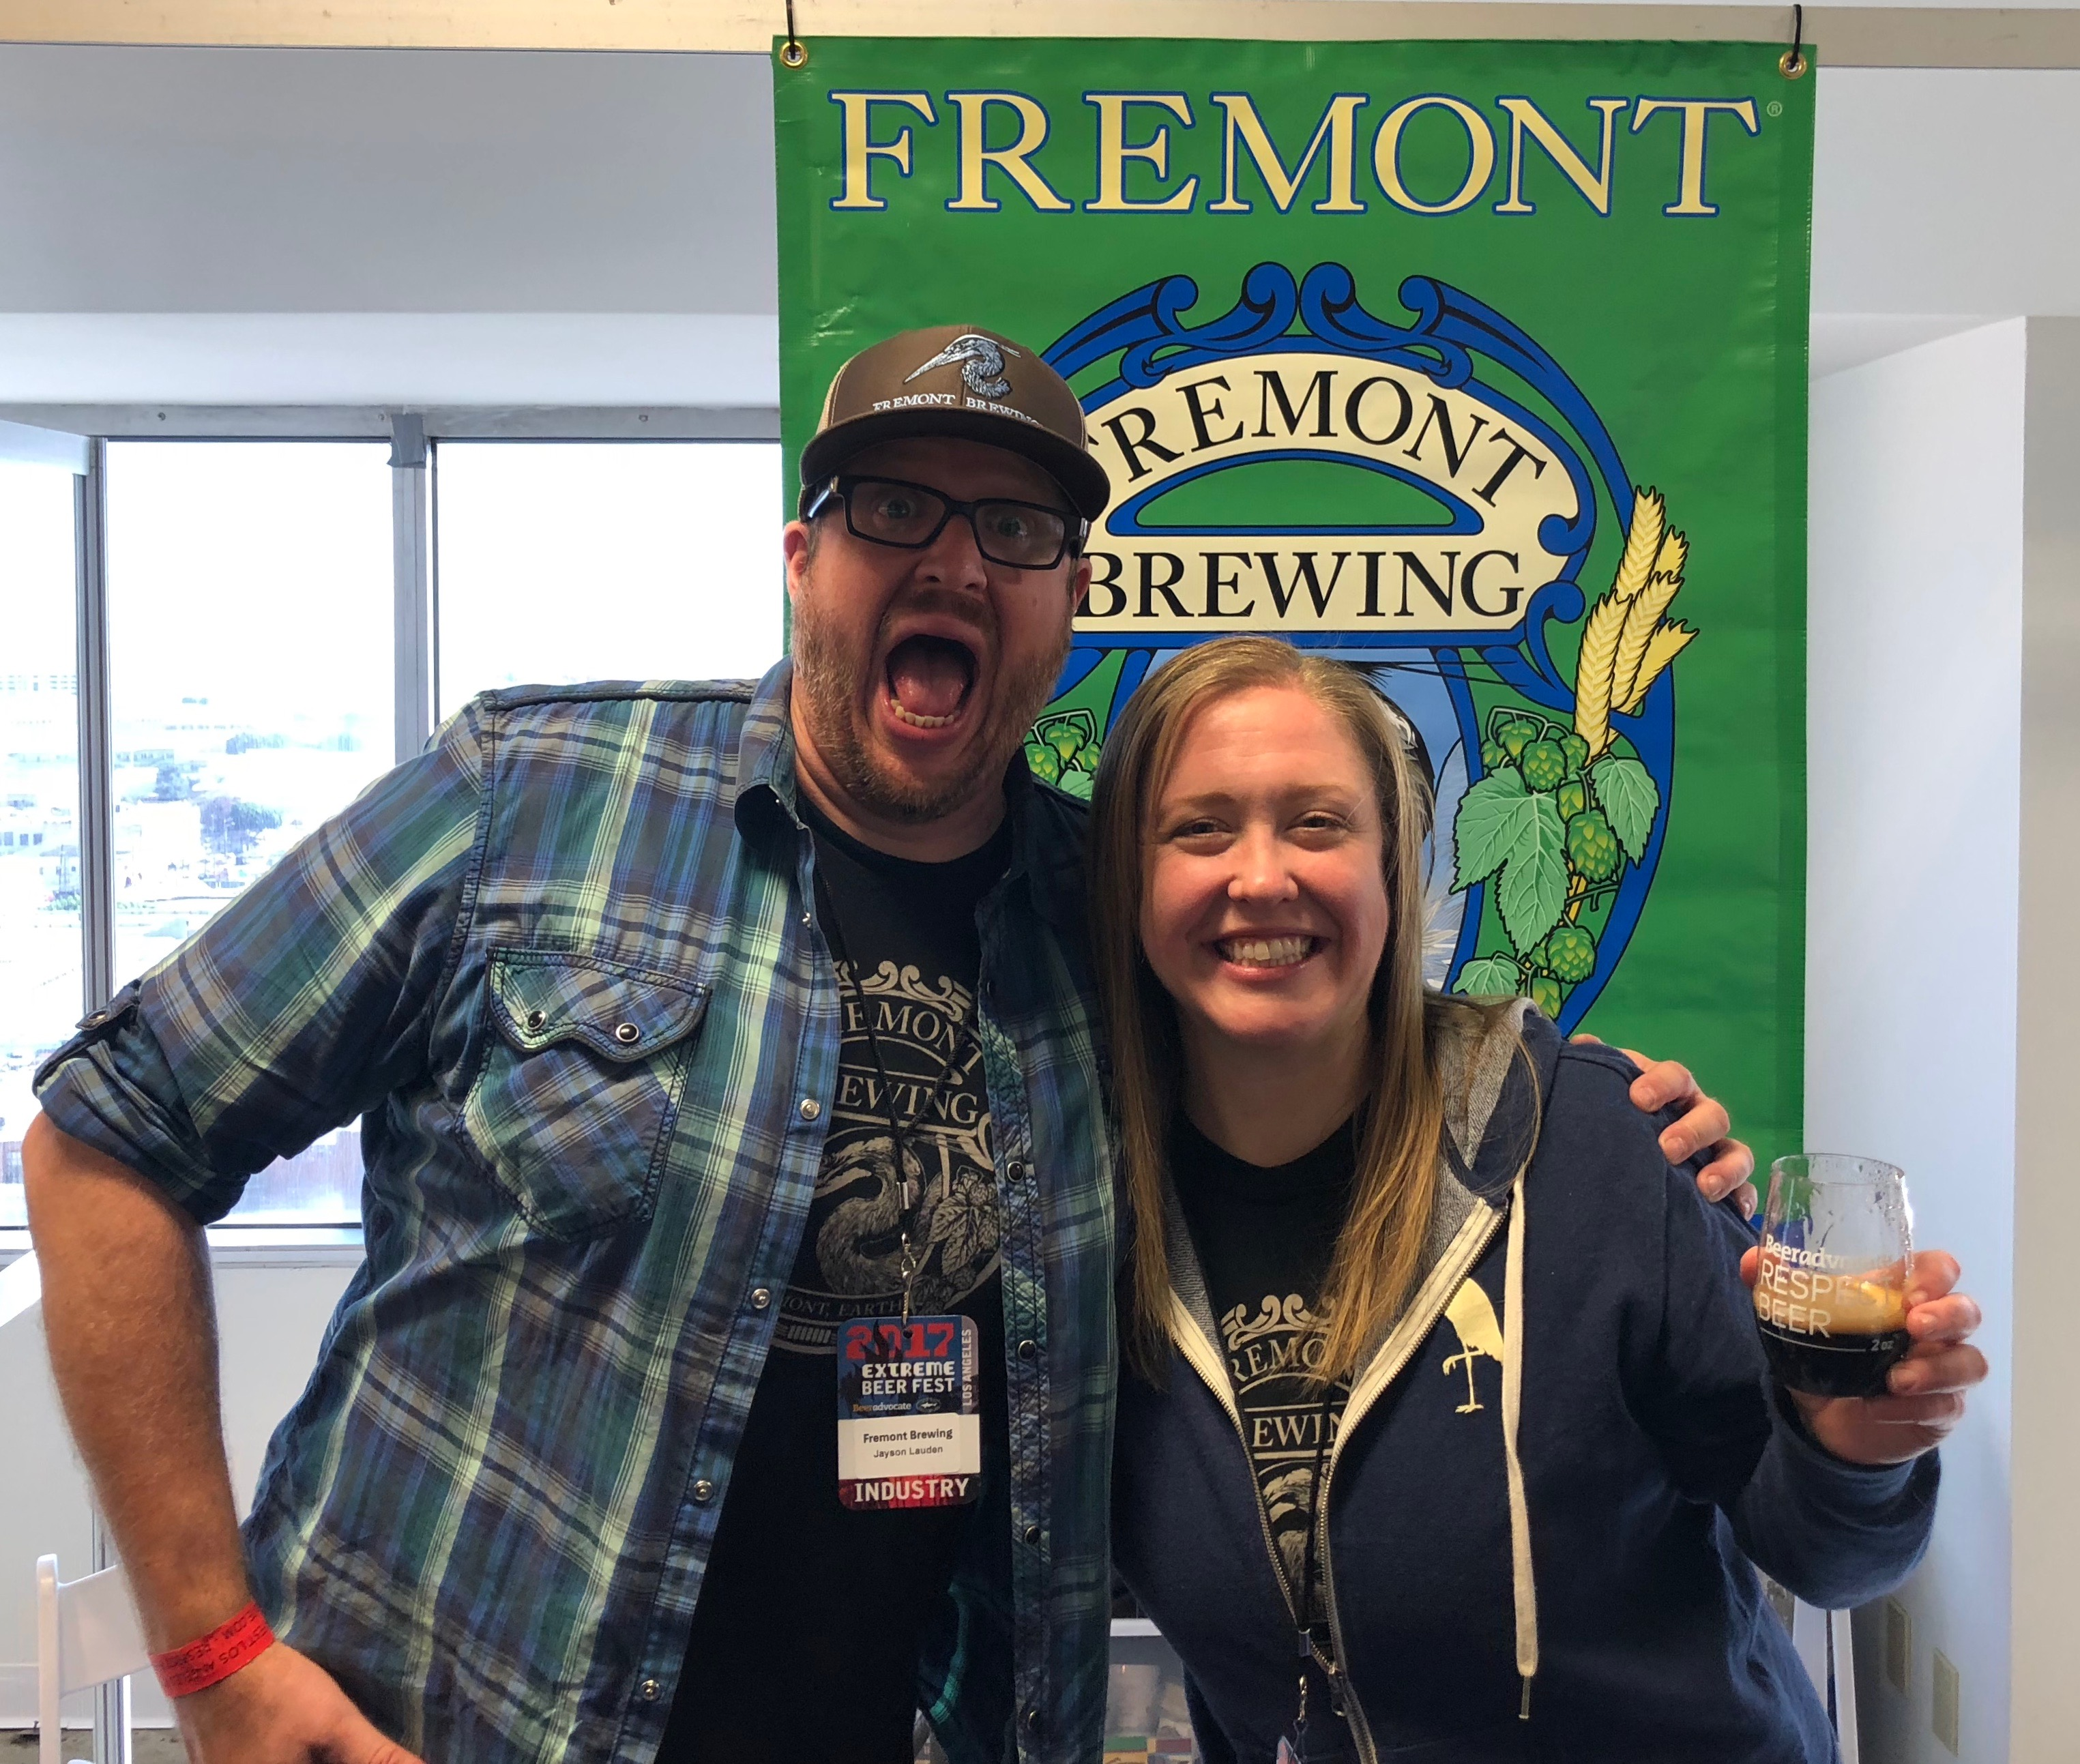 Fremont Brewing made the trek to LA for BeerAdvocate Extreme Beer Fest in Los Angeles.